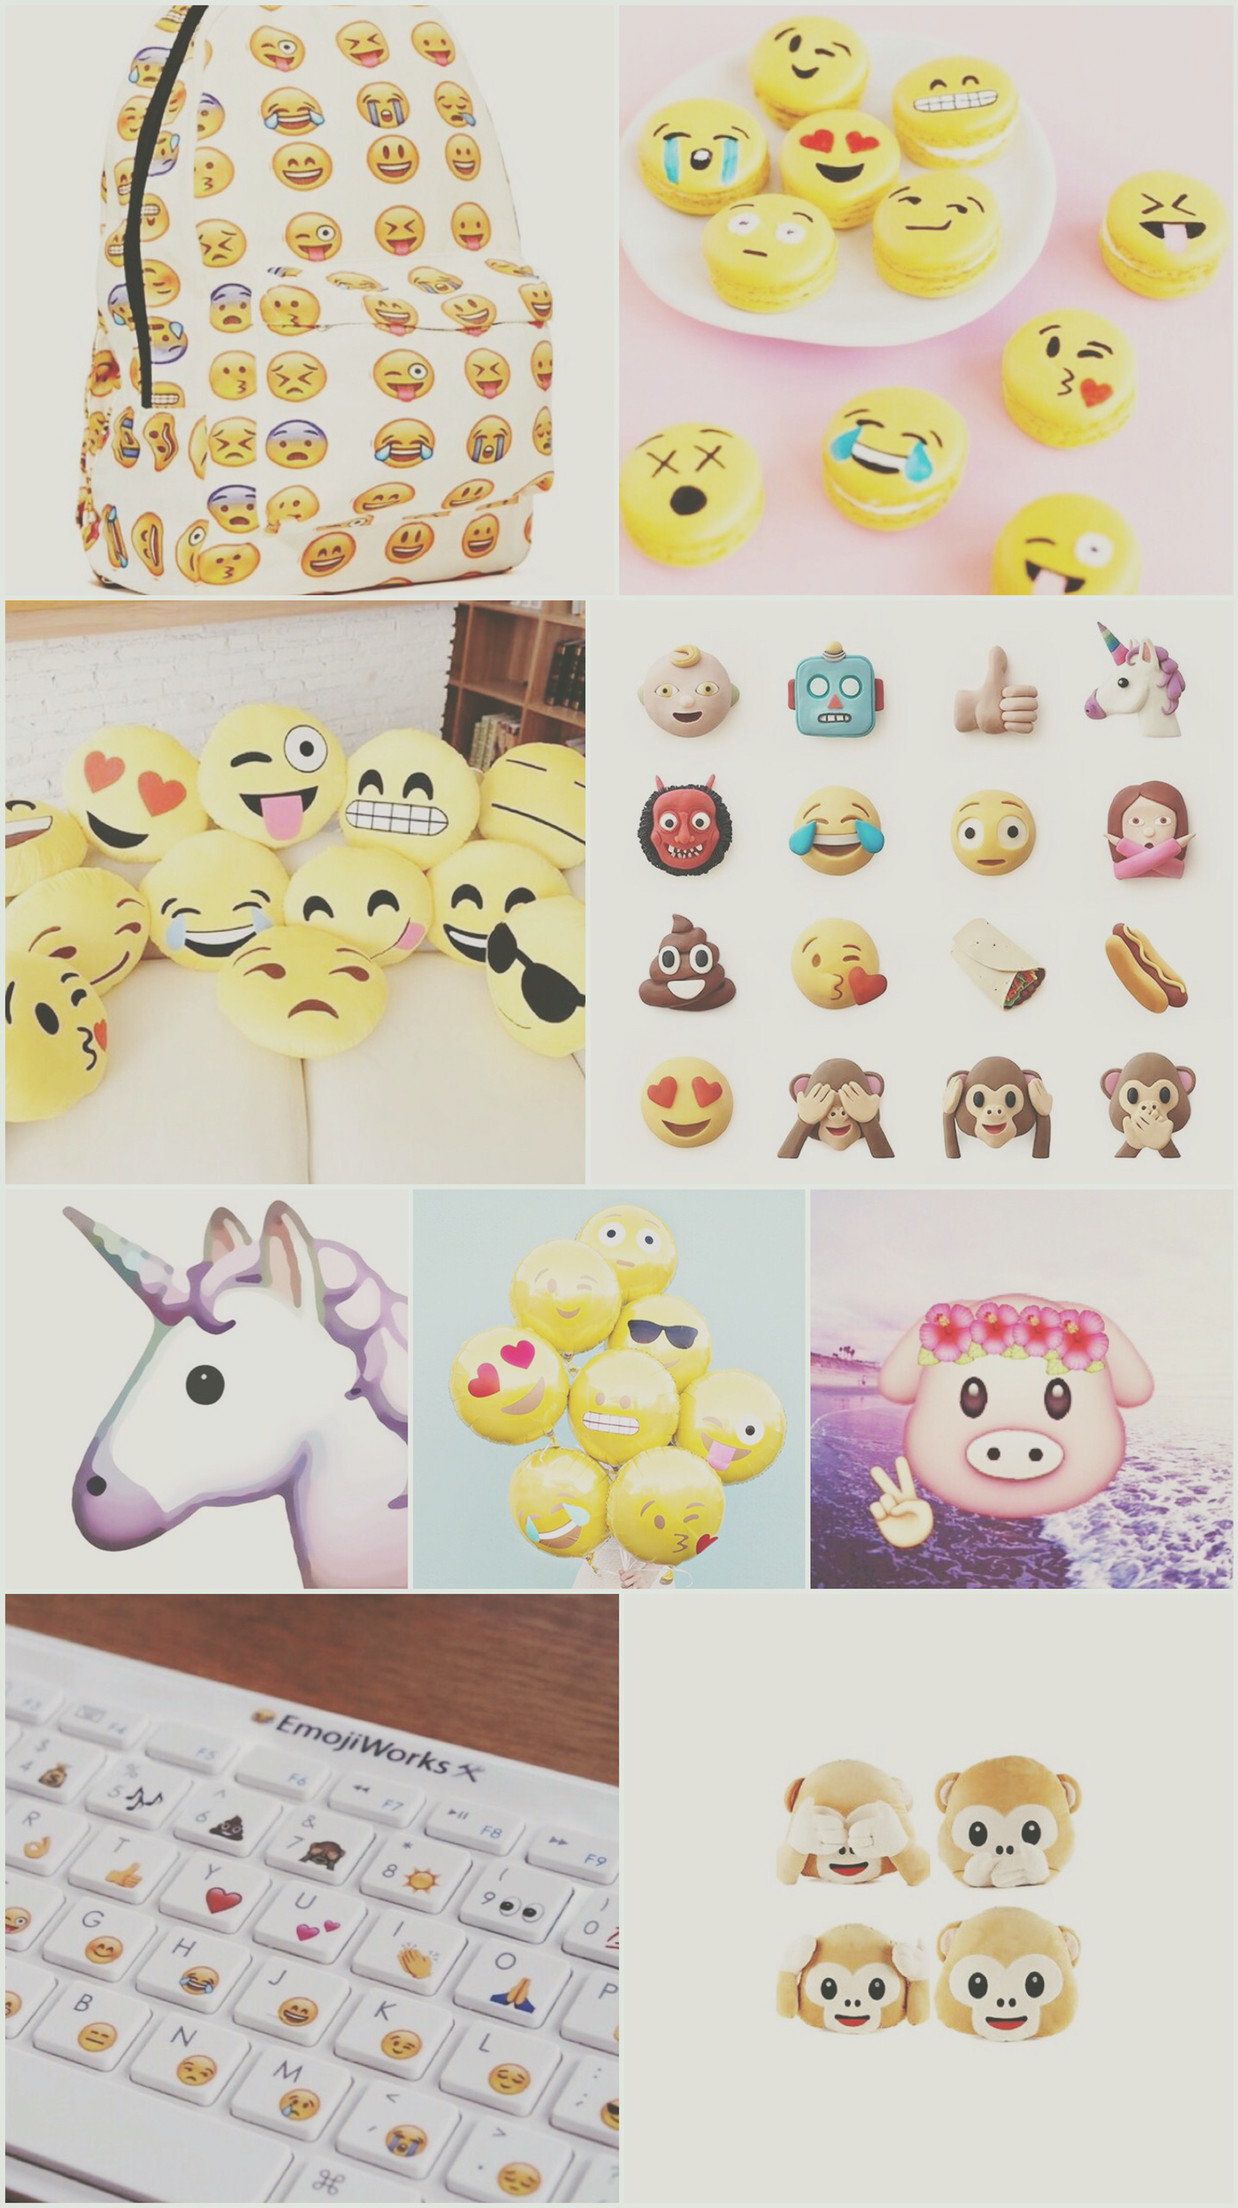 Cute Bow Iphone Wallpaper Cute Emoji Wallpapers For Iphone 57 Images